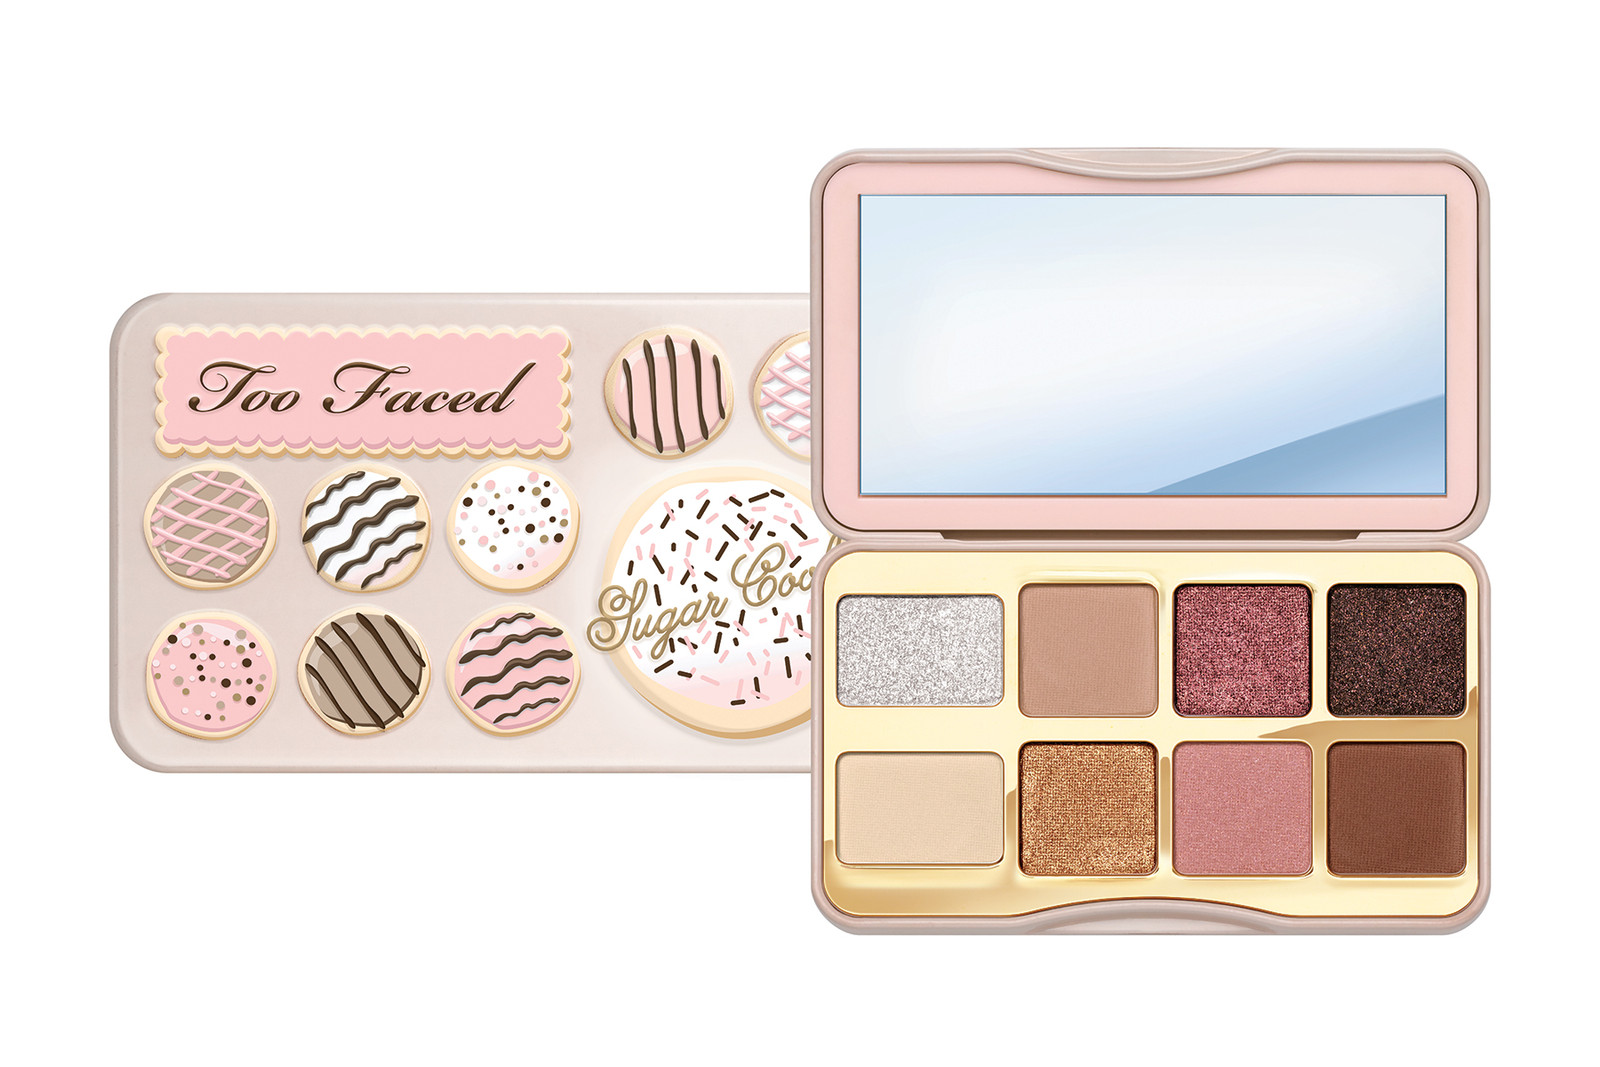 Too Faced Christmas 2018 Makeup Release Beauty Cosmetics Holiday